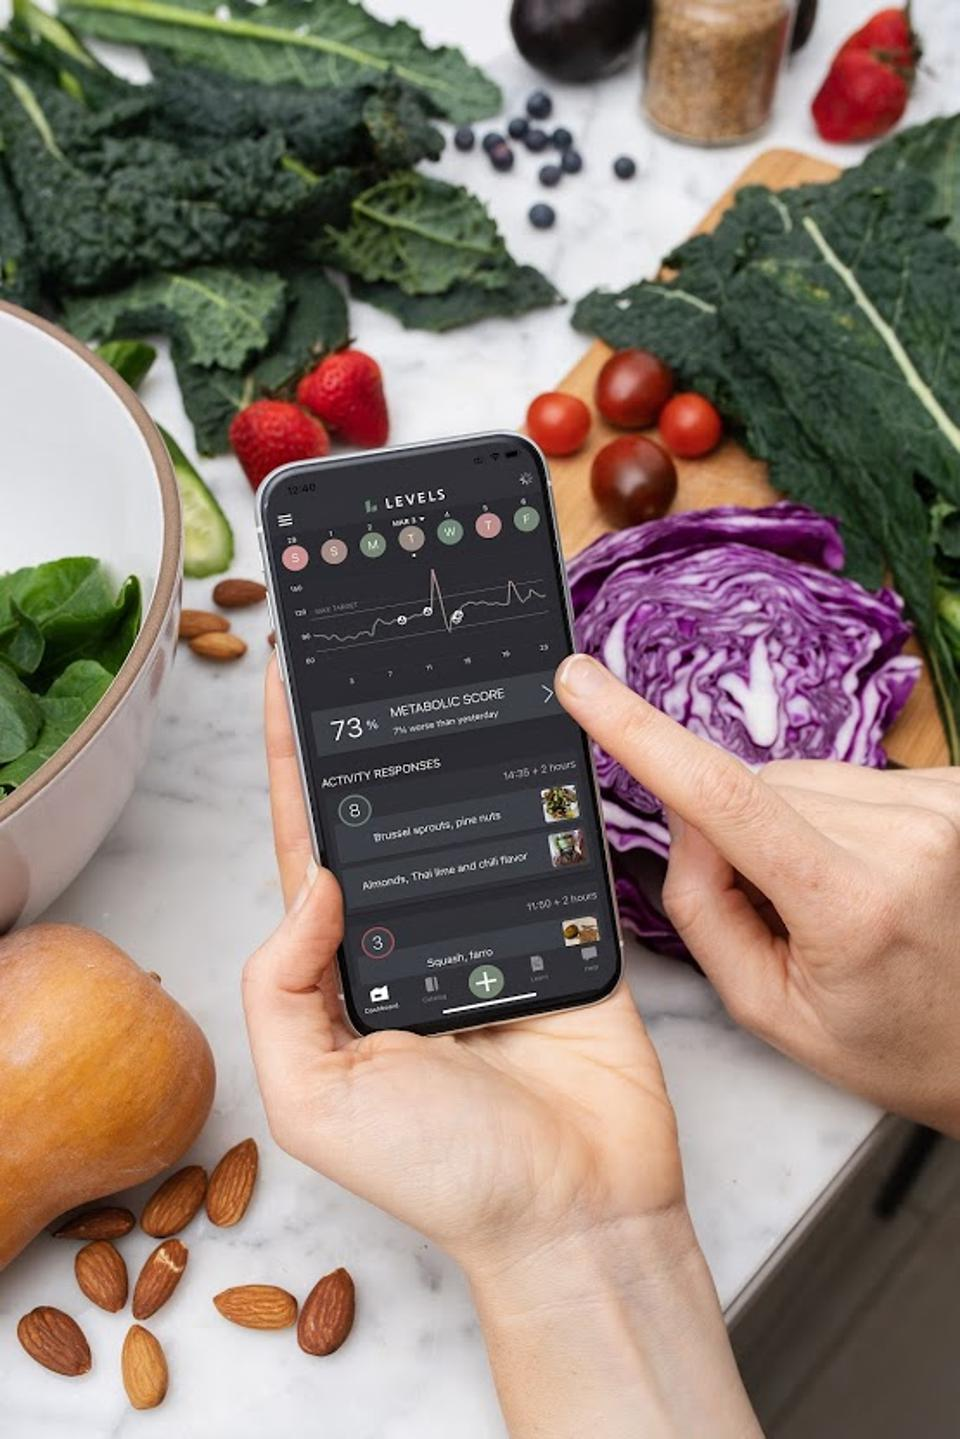 A hand holding a phone which shows a blood sugar graph over a table of healthy foods